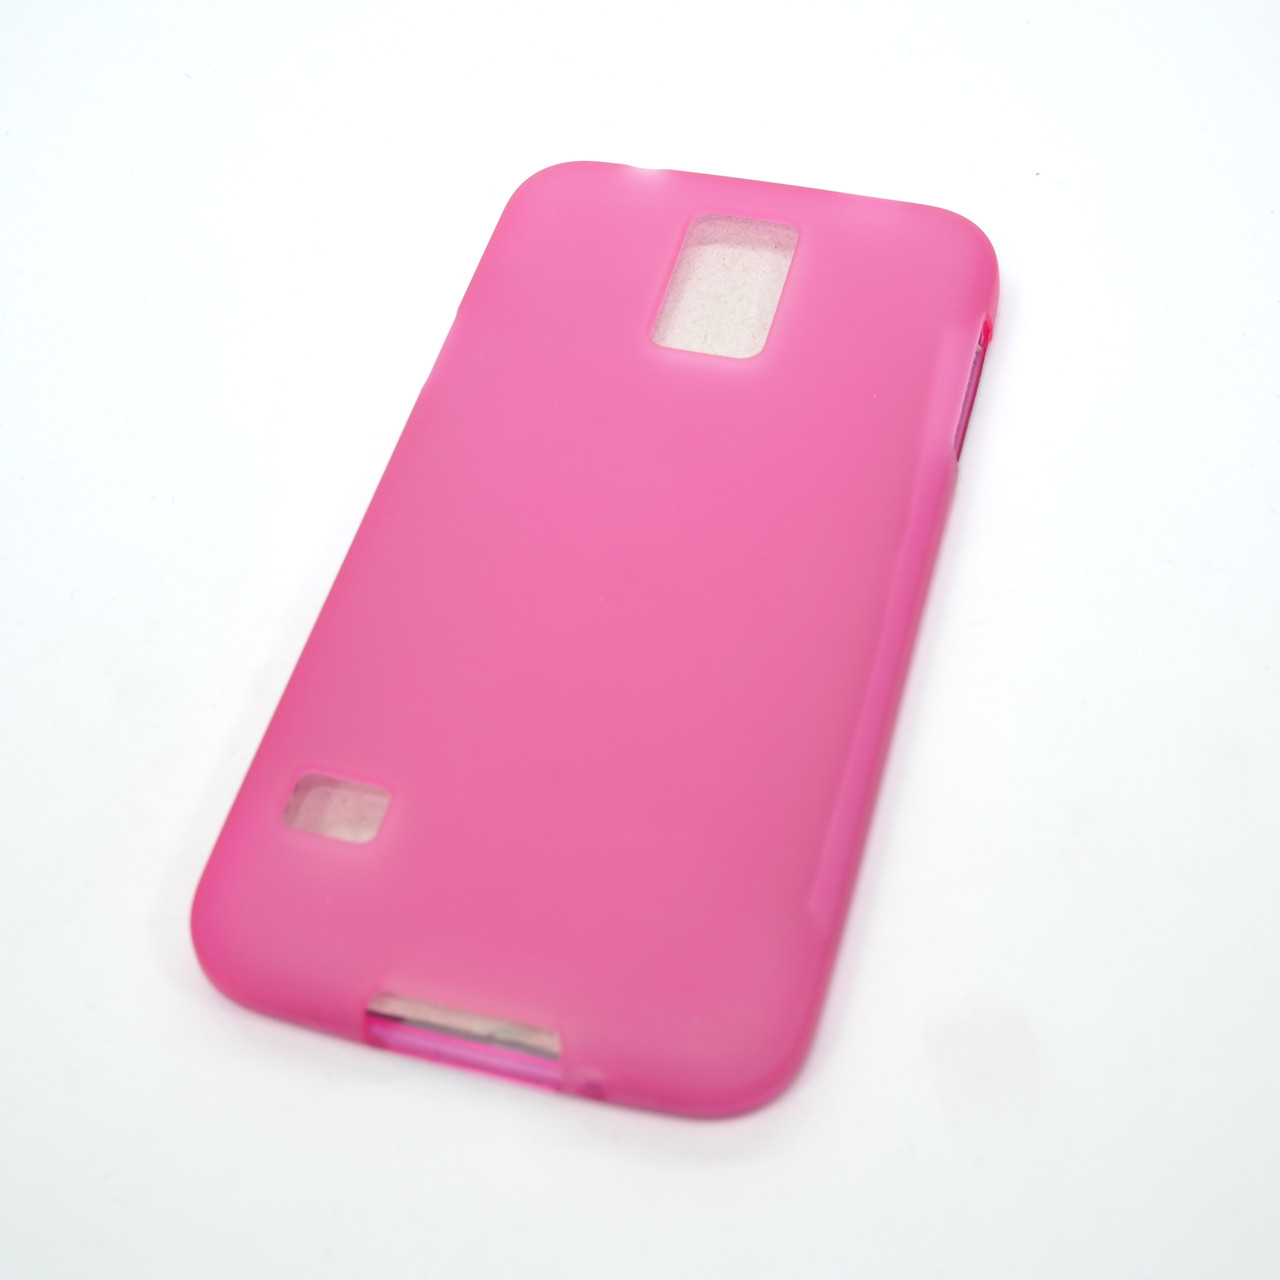 Silicon Samsung Galaxy S5 pink